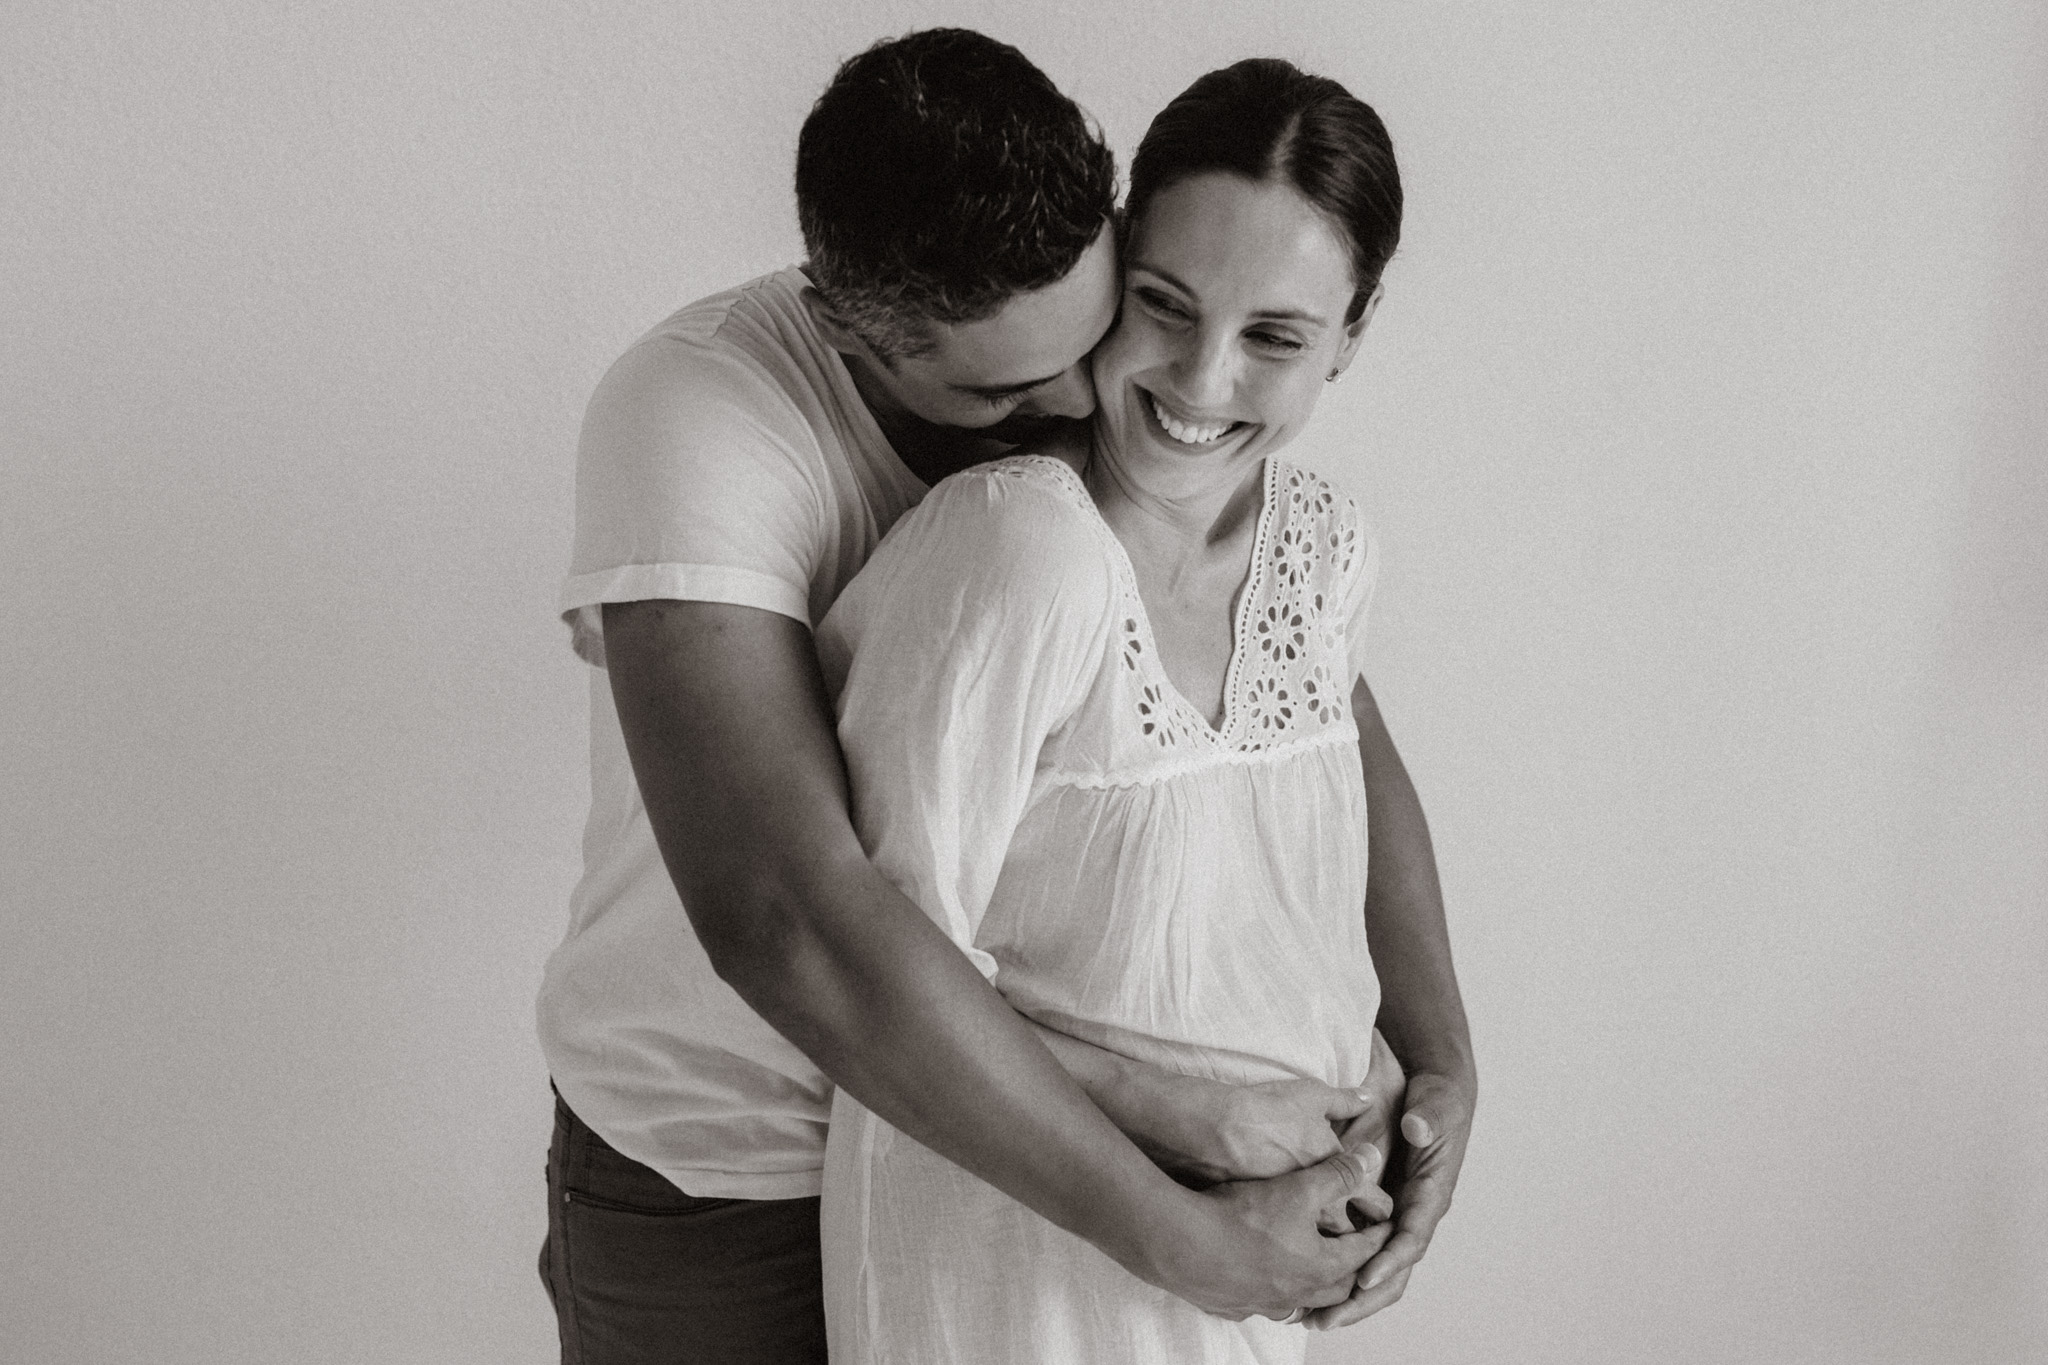 Laura and N'tamo, Barcelona maternity session